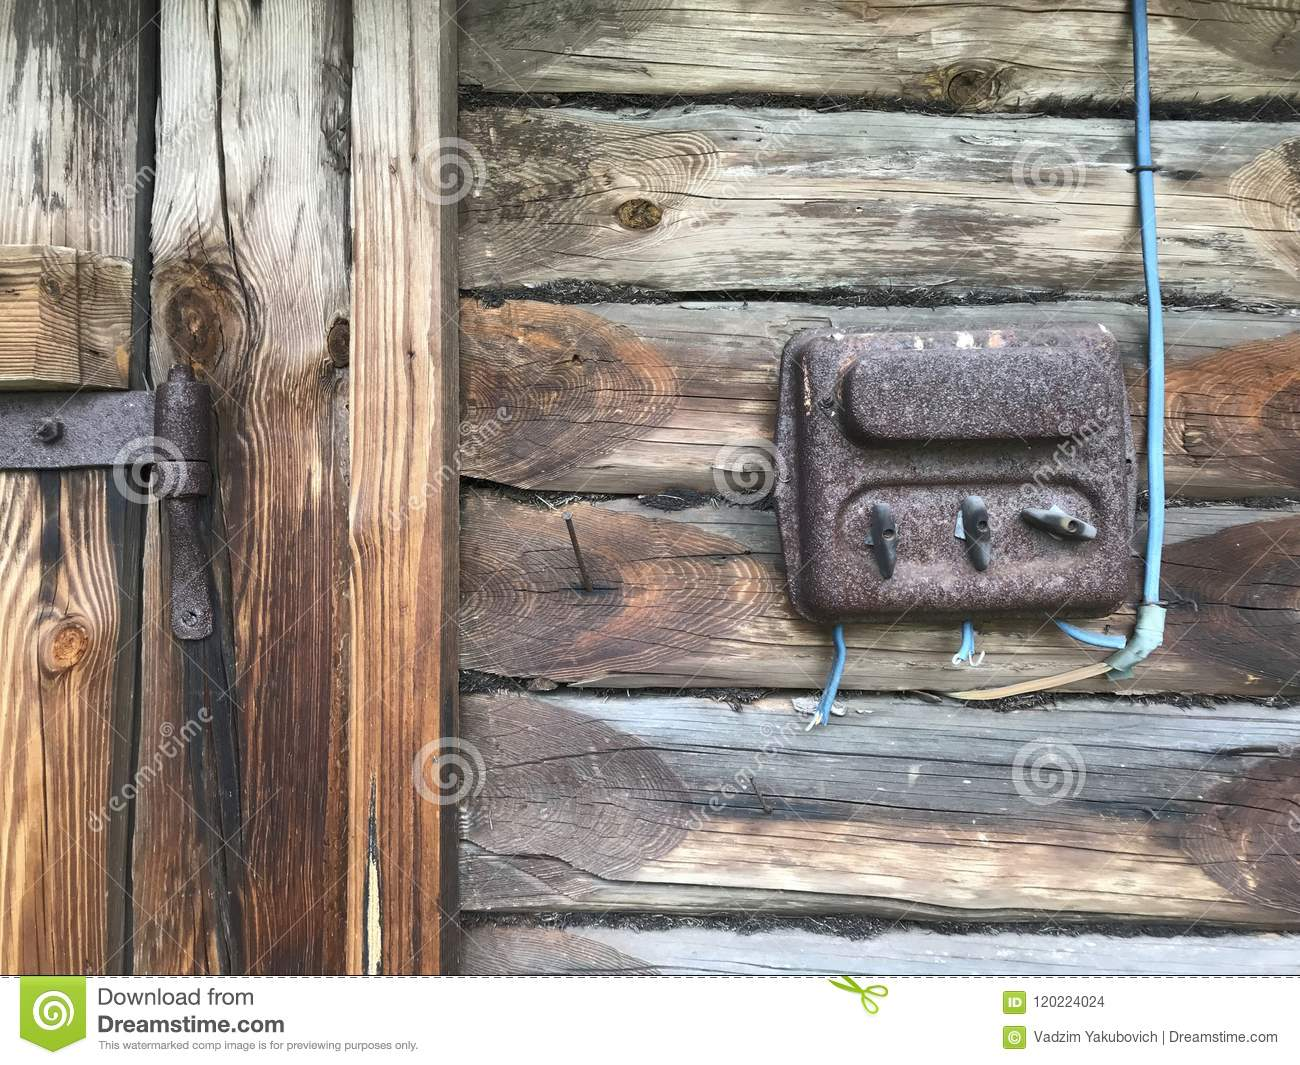 hight resolution of an old rust covered electric flap on the wall of a wooden shed electrical wiring and plastic switches are visible